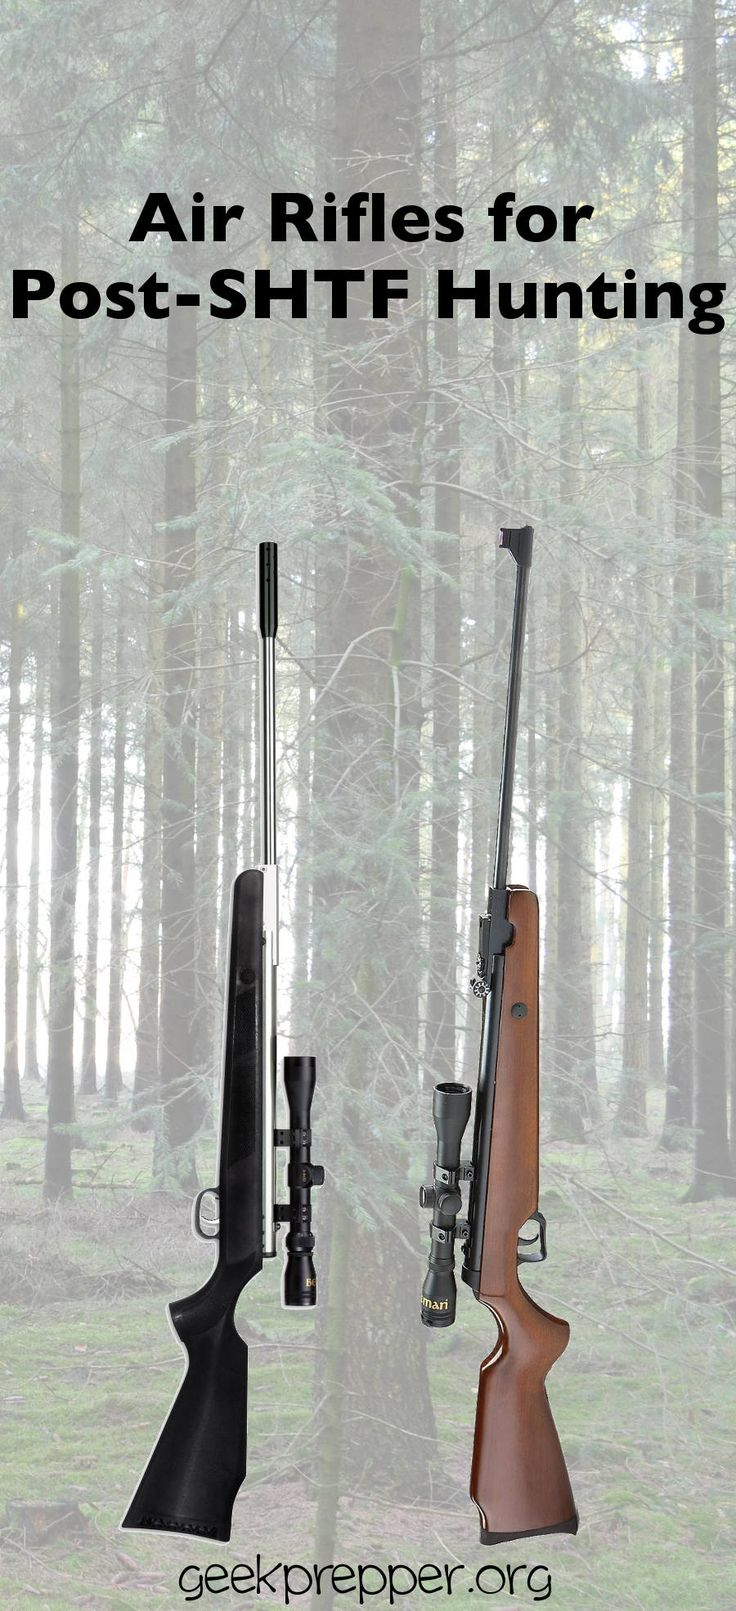 Air rifles are the perfect, stealthy solution for providing food for your family after SHTF. Make sure to keep a couple air rifles ready for the collapse. GeekPrepper.org